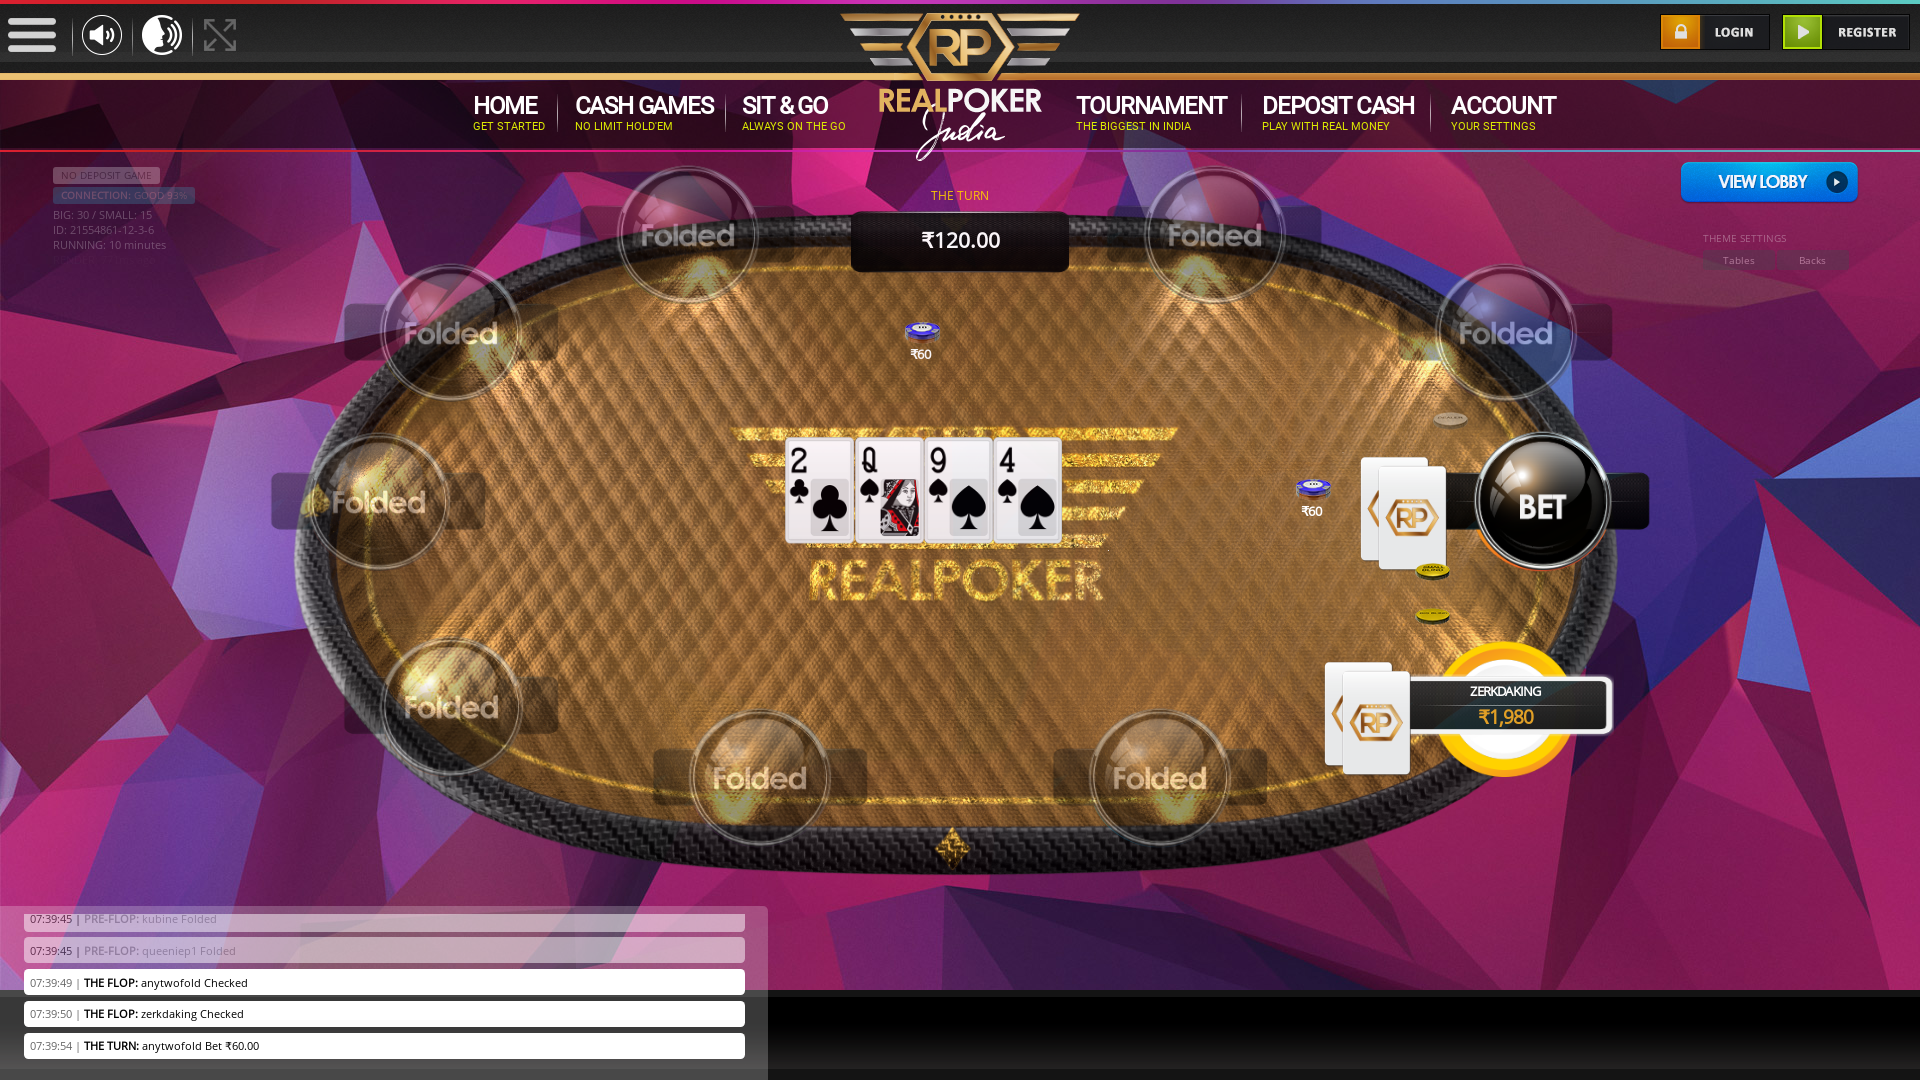 Basavangudi, Bangalore Poker Website on the 14th August